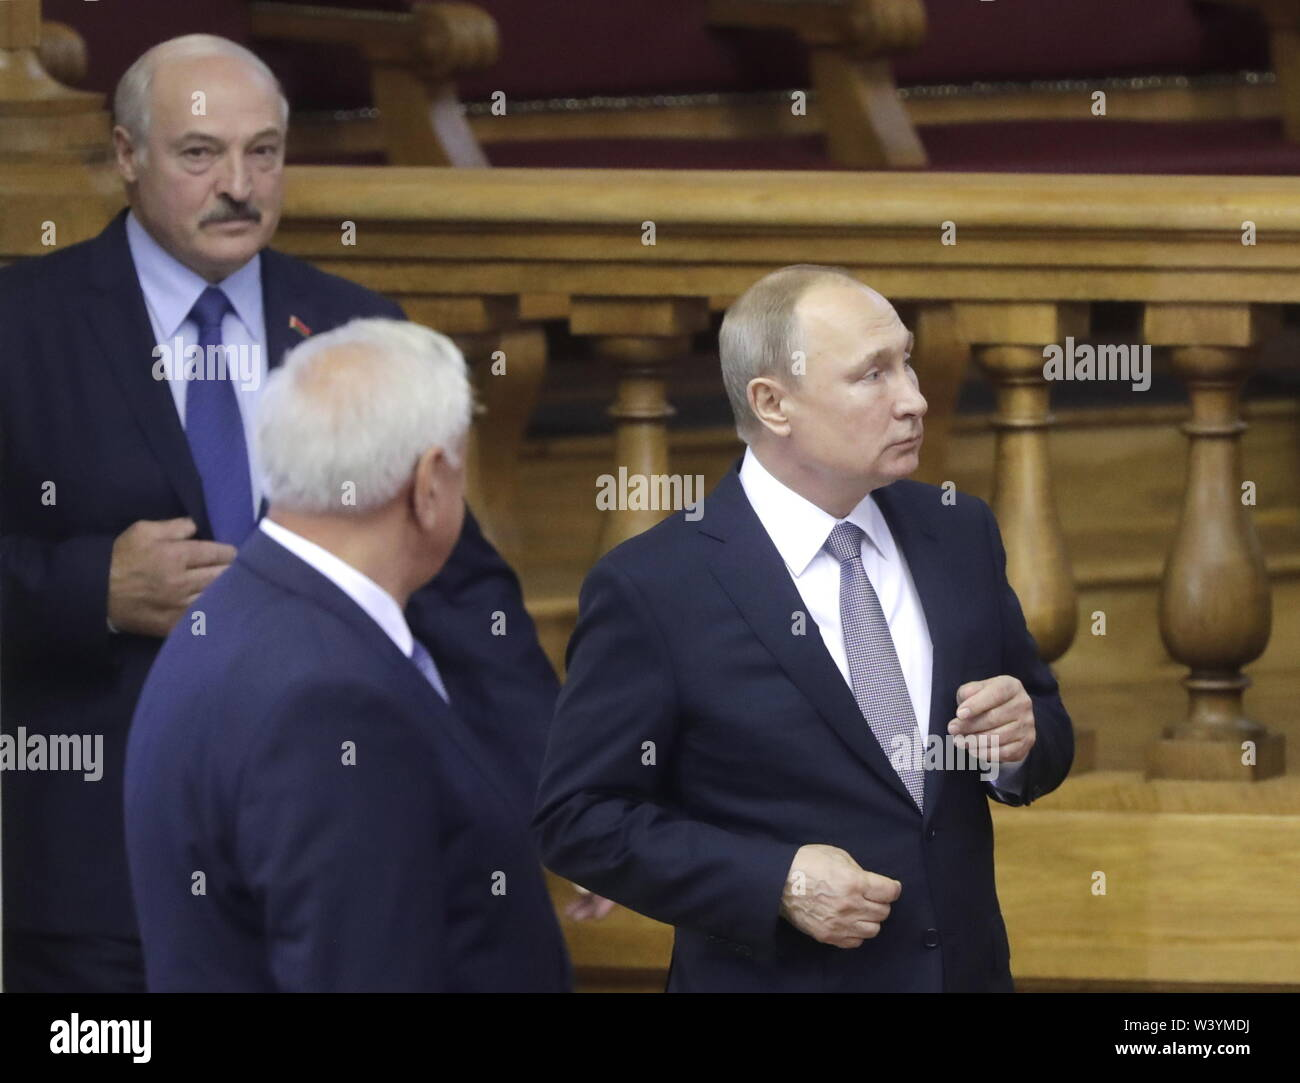 St Petersburg, Russia. 18th July, 2019. ST PETERSBURG, RUSSIA - JULY 18, 2019: Belarus' President Alexander Lukashenko and Russia's President Vladimir Putin (L-R back)) attend a plenary meeting at the 6th Belarus-Russia Forum of Regions, Tauride Palace. Mikhail Metzel/TASS Credit: ITAR-TASS News Agency/Alamy Live News - Stock Image